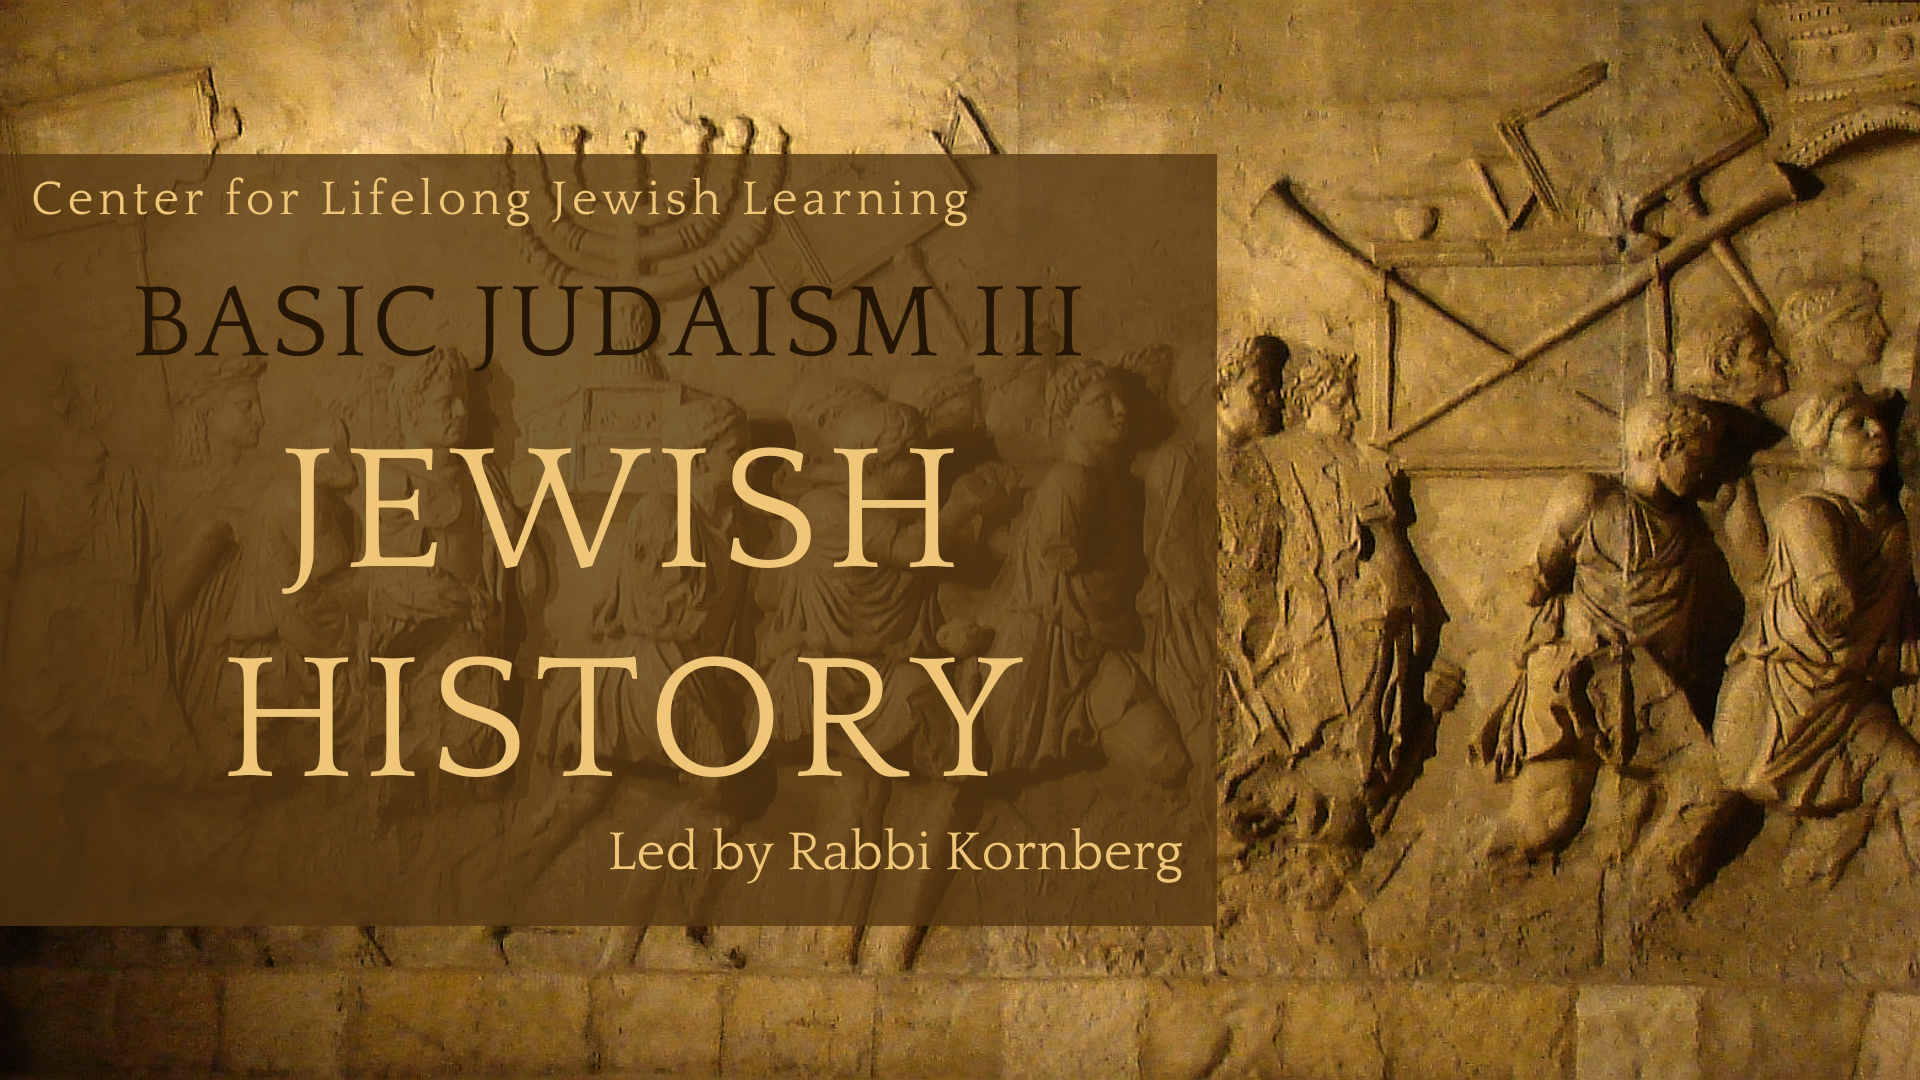 Banner Image for CLJL - Basic Judaism III Jewish History